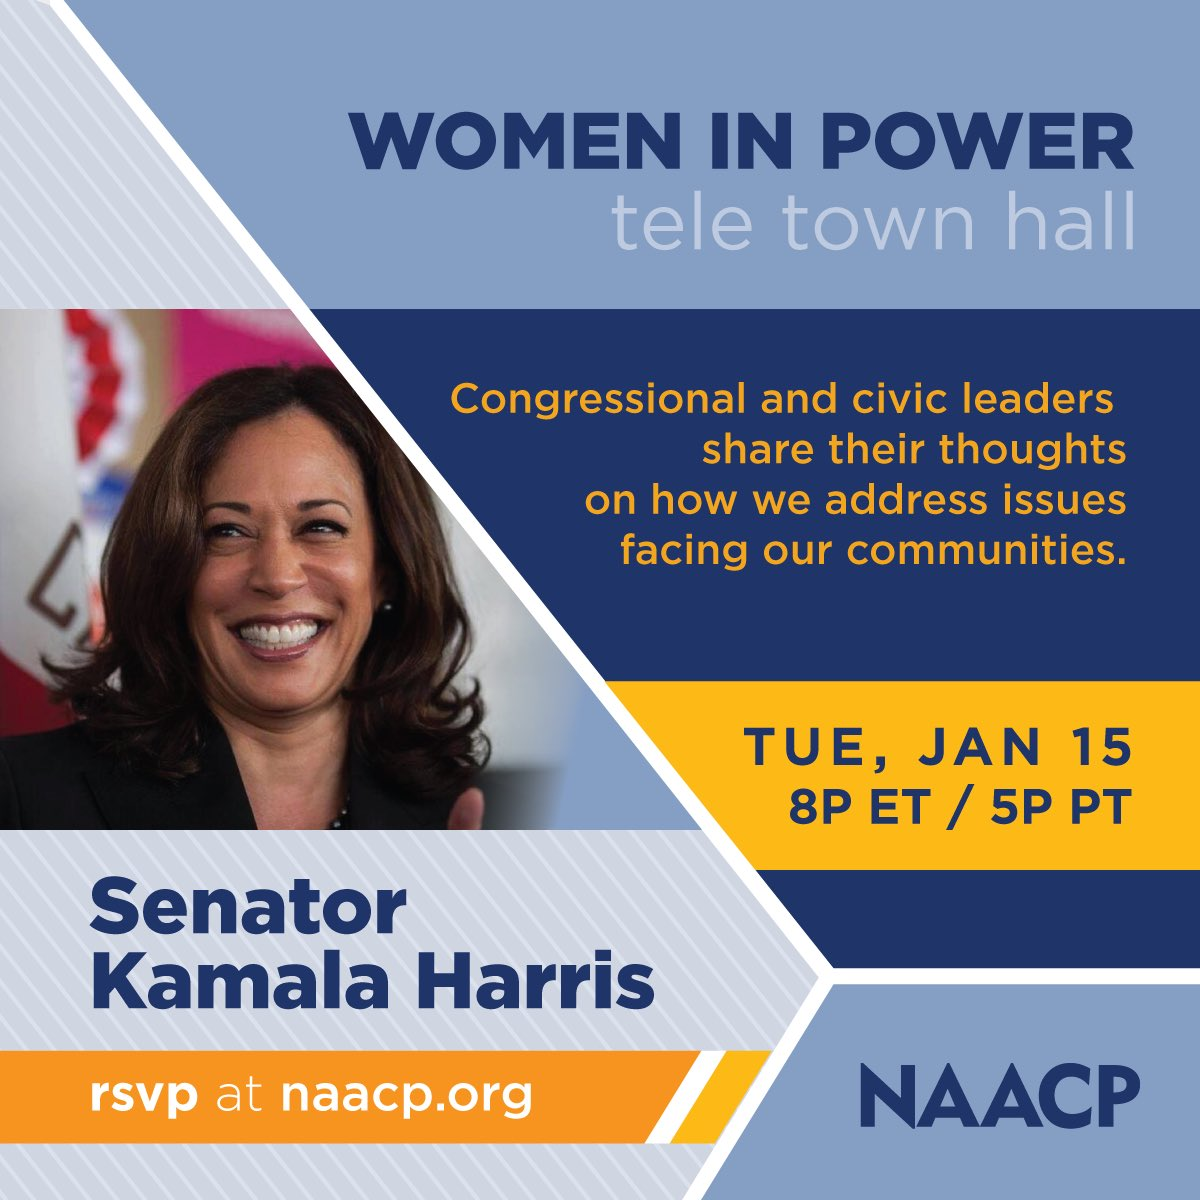 NAACP to Host 2019 Women in Power Town Hall With Sen. Kamala Harris and Reps. Karen Bass, Lucy McBath and Marcia Fudge